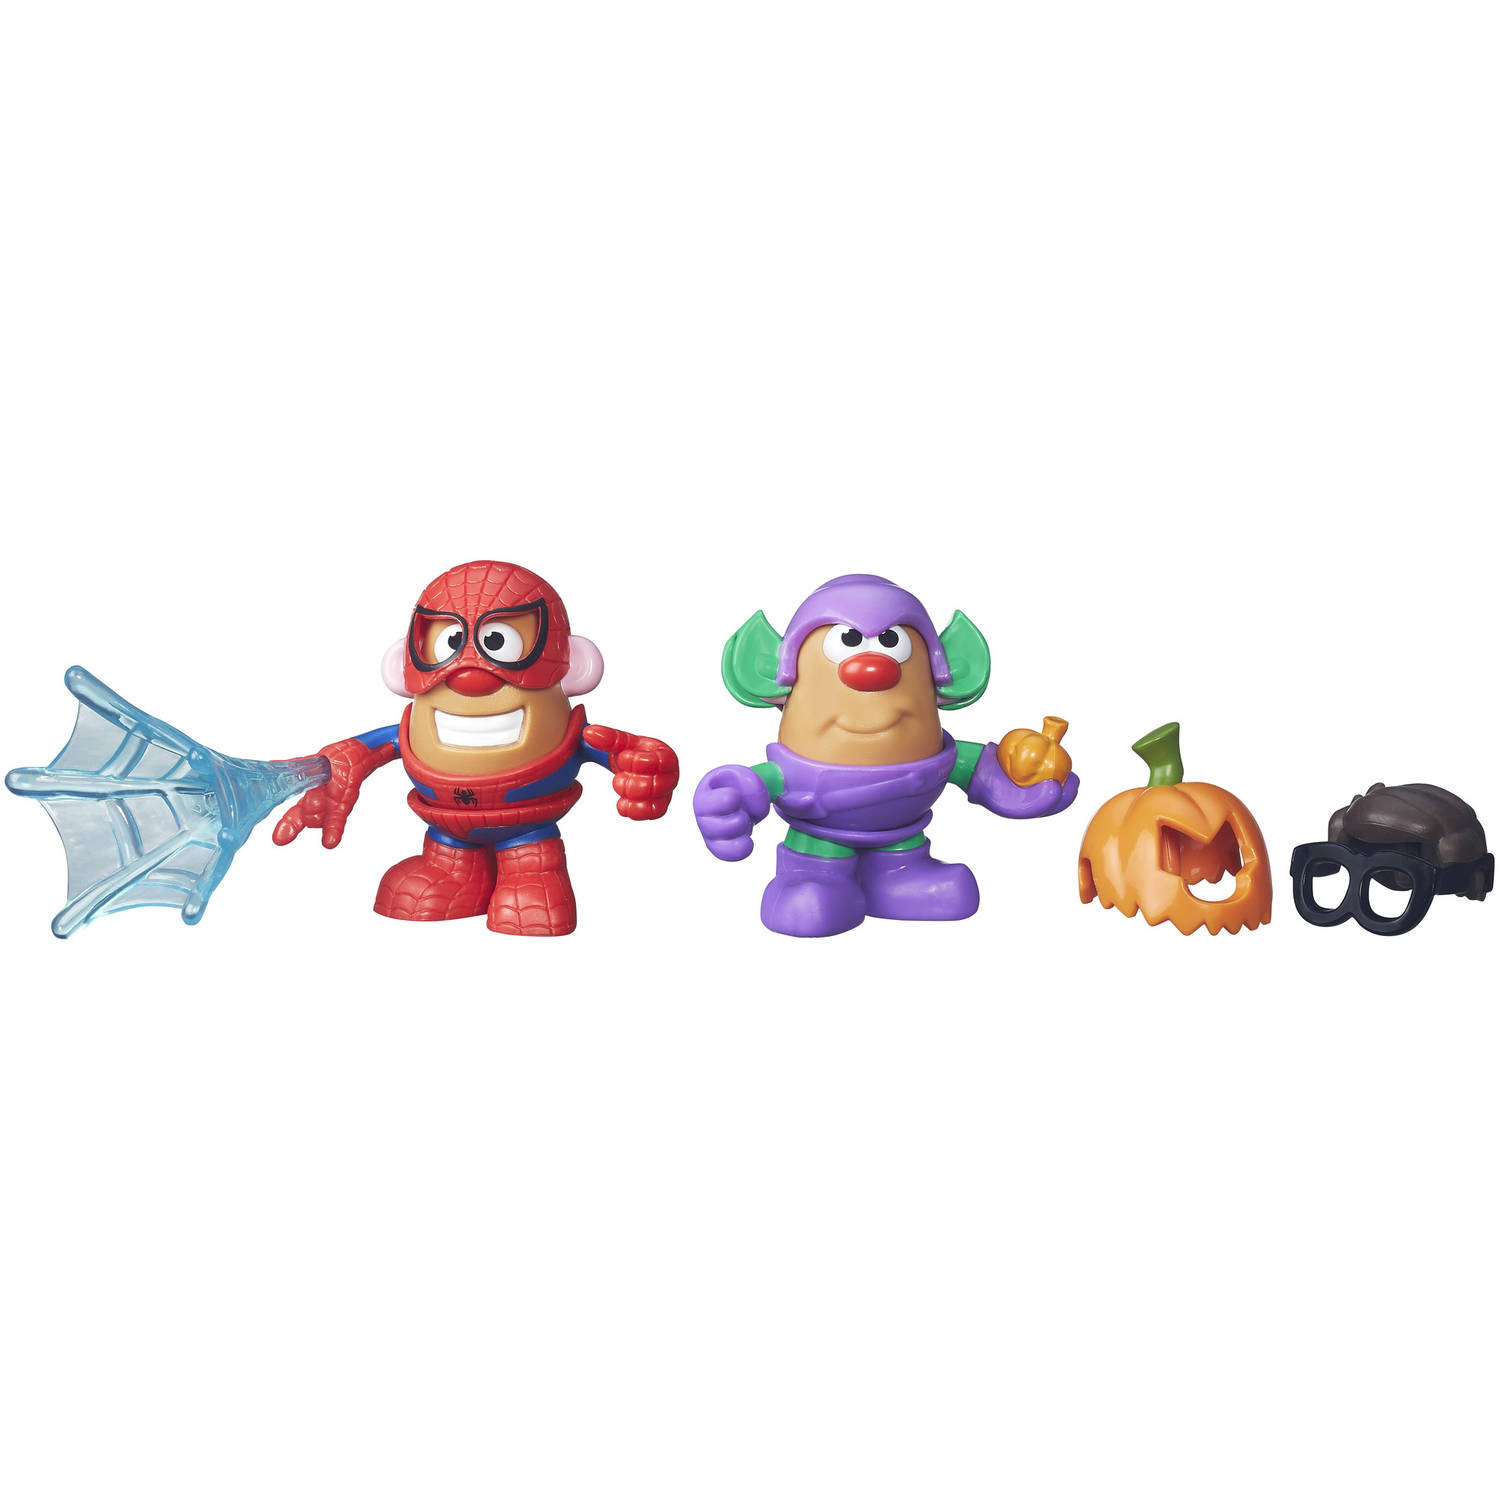 Playskool Friends Mr. Potato Head Marvel Spider-Man & Green Goblin Toys 11 pc Carded Pack by Hasbro